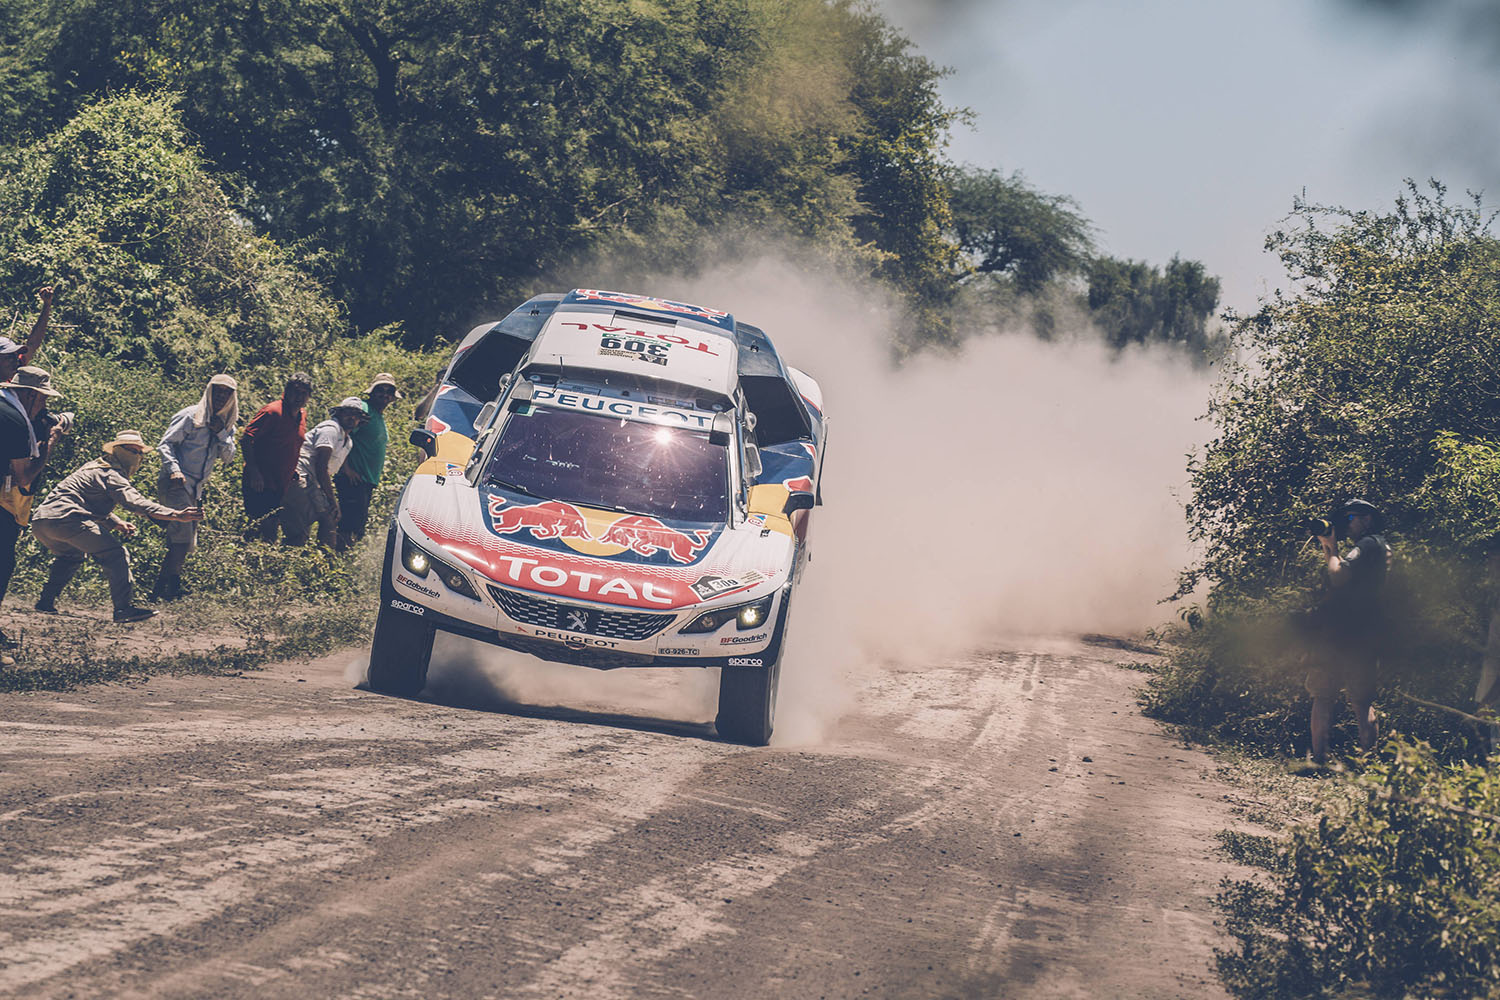 Sebastien Loeb (FRA) of Team Peugeot TOTAL races during stage 2 of Rally Dakar 2017 from Resistencia to San Miguel de Tucuman, Argentina on January 3, 2017. // Flavien Duhamel/Red Bull Content Pool